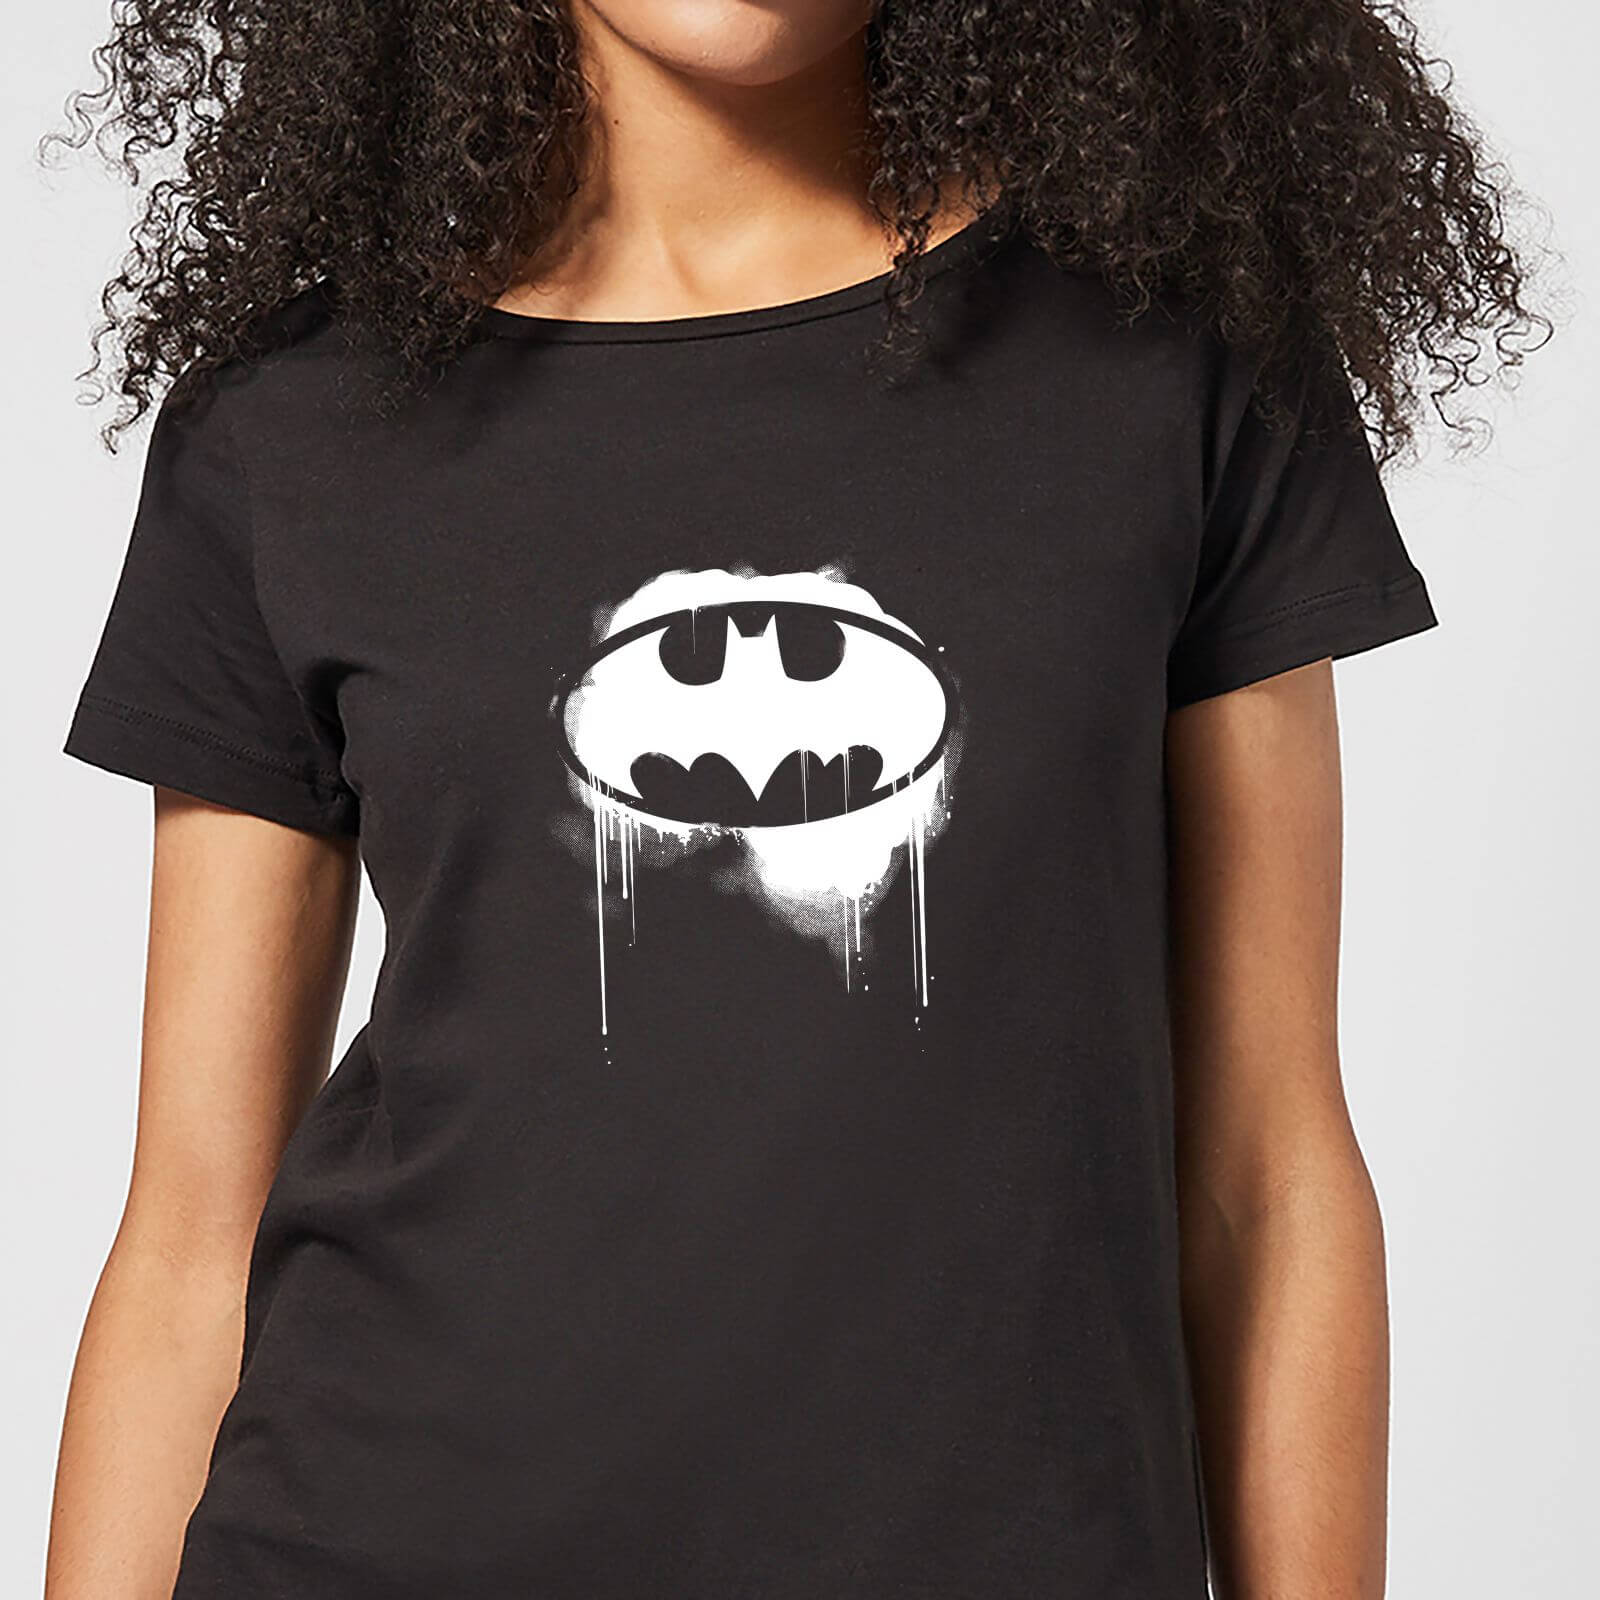 Justice League Graffiti Batman Women's T-Shirt - Black - XL - Negro de DC Comics